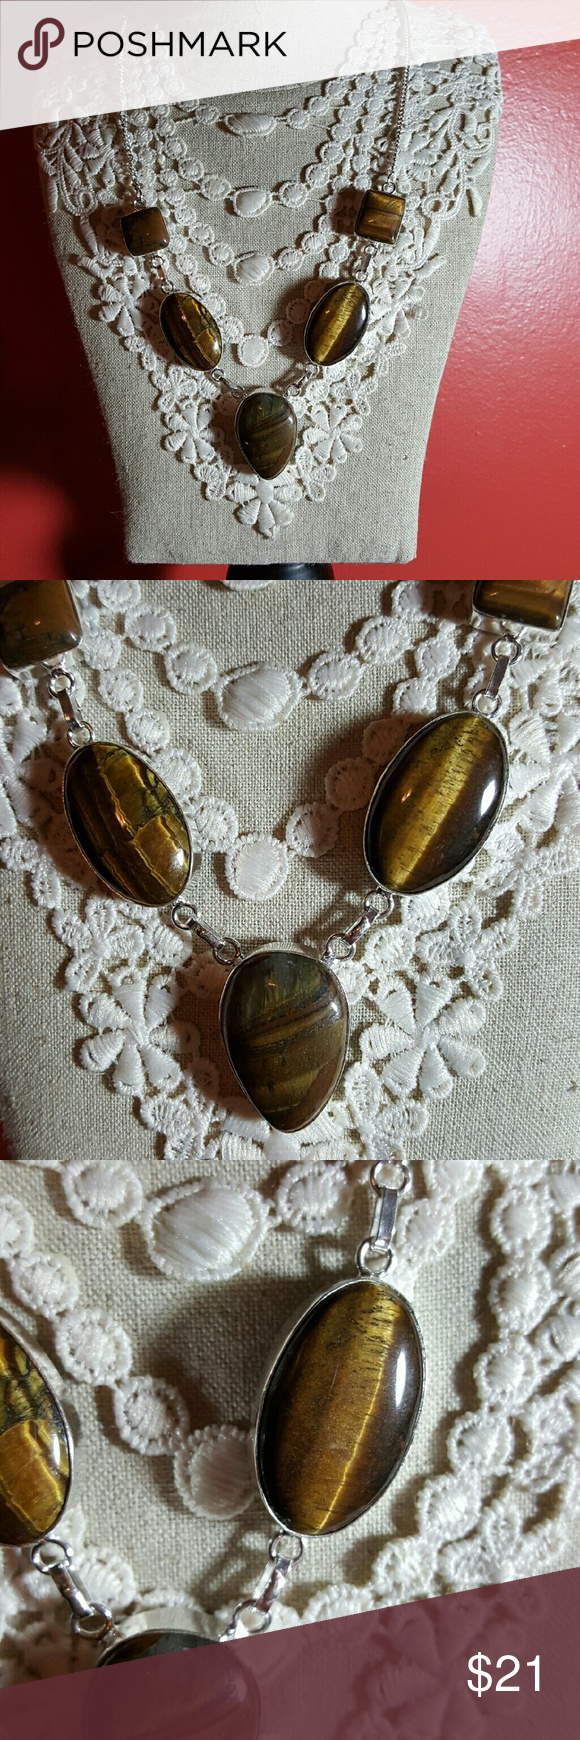 SALE Tiger eye stone necklace. NWOT Natural Tiger Eye stone is silver setting. NWOT Jewelry Necklaces